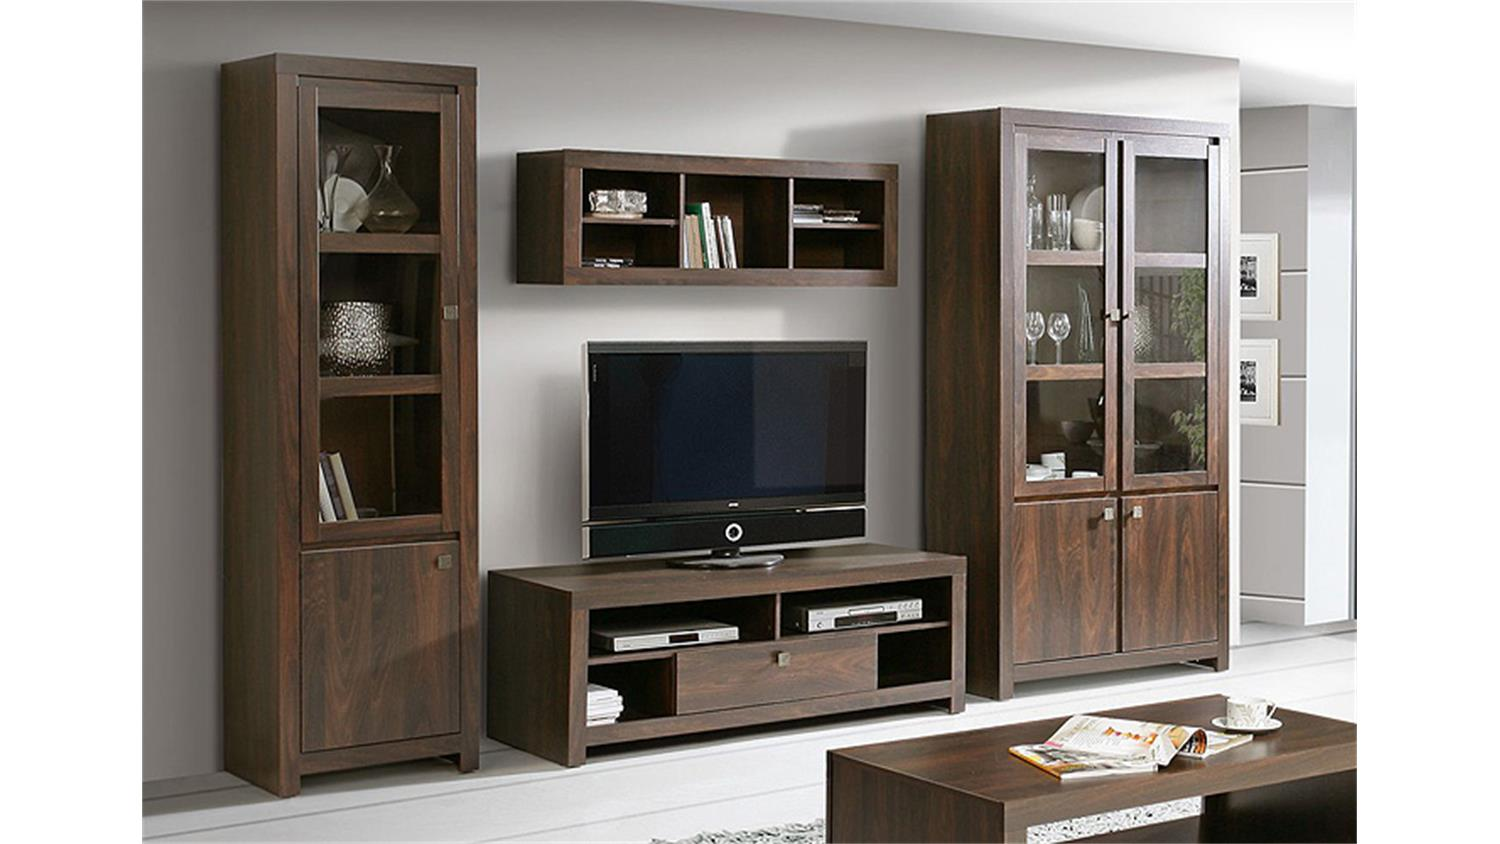 tv schrank bei poco m bel design idee f r sie. Black Bedroom Furniture Sets. Home Design Ideas